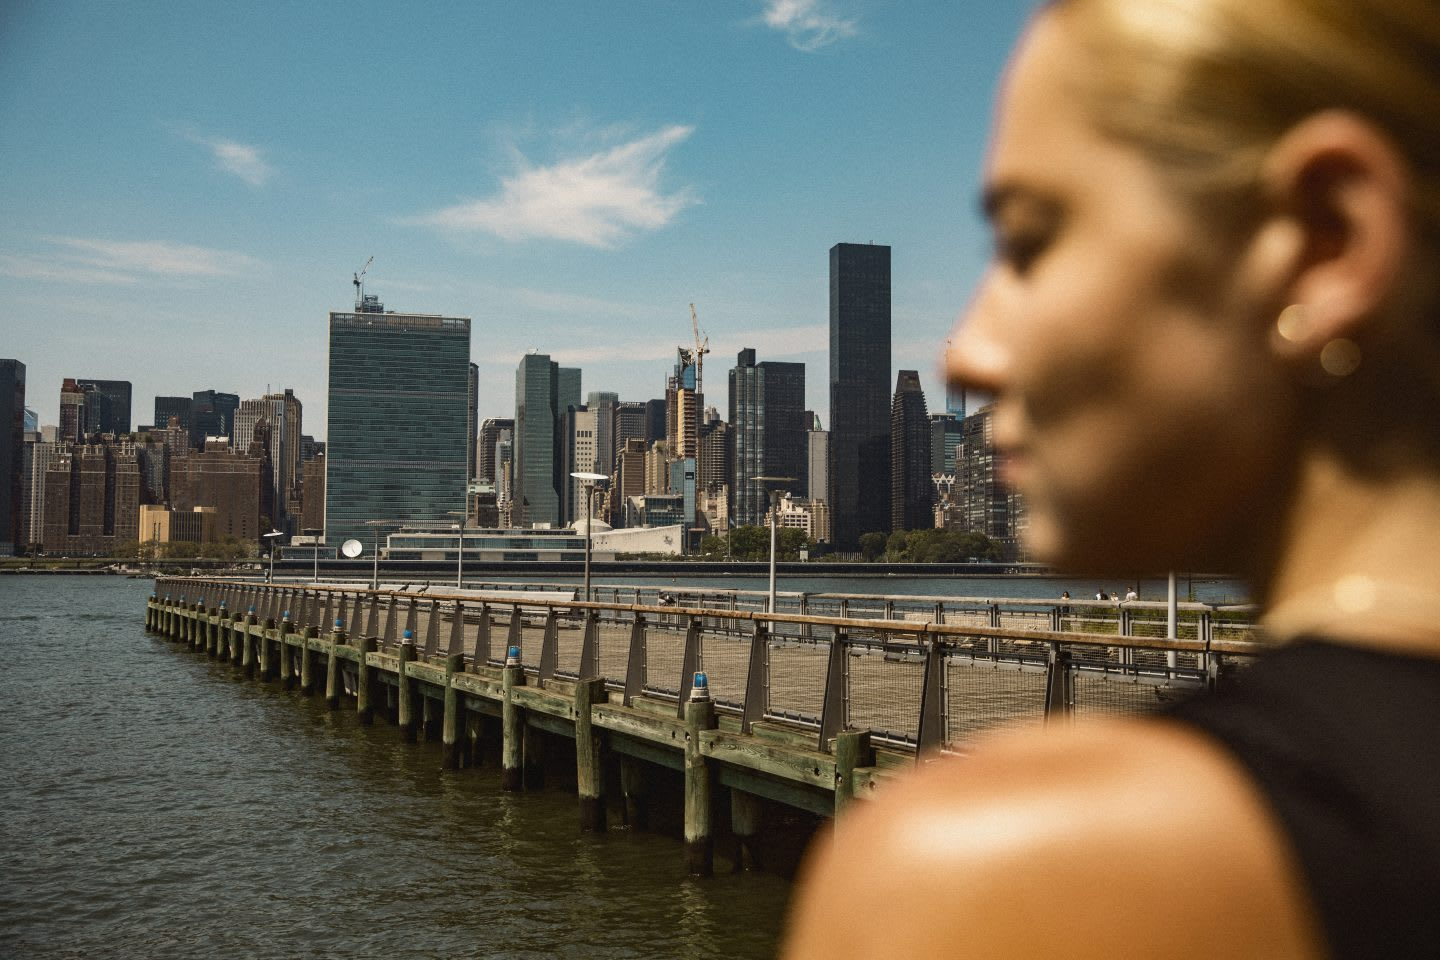 Woman staring out at city skyline, view, city, buildings, metropolitan, adidas, sports, GamePlan A